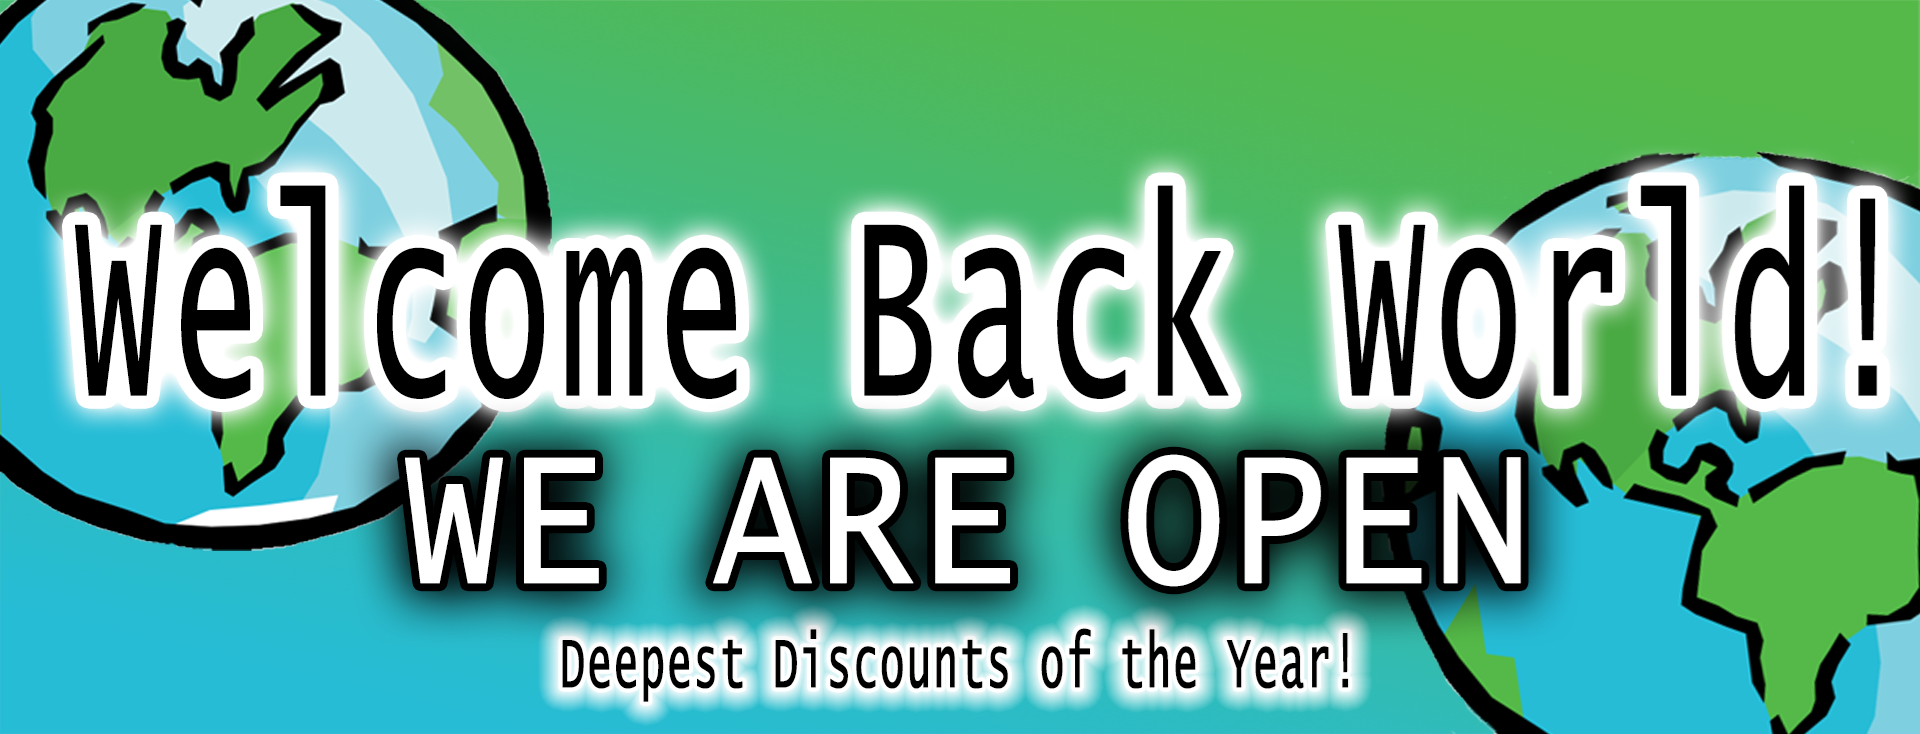 Welcome back world, enjoy our deepest discount of the year!